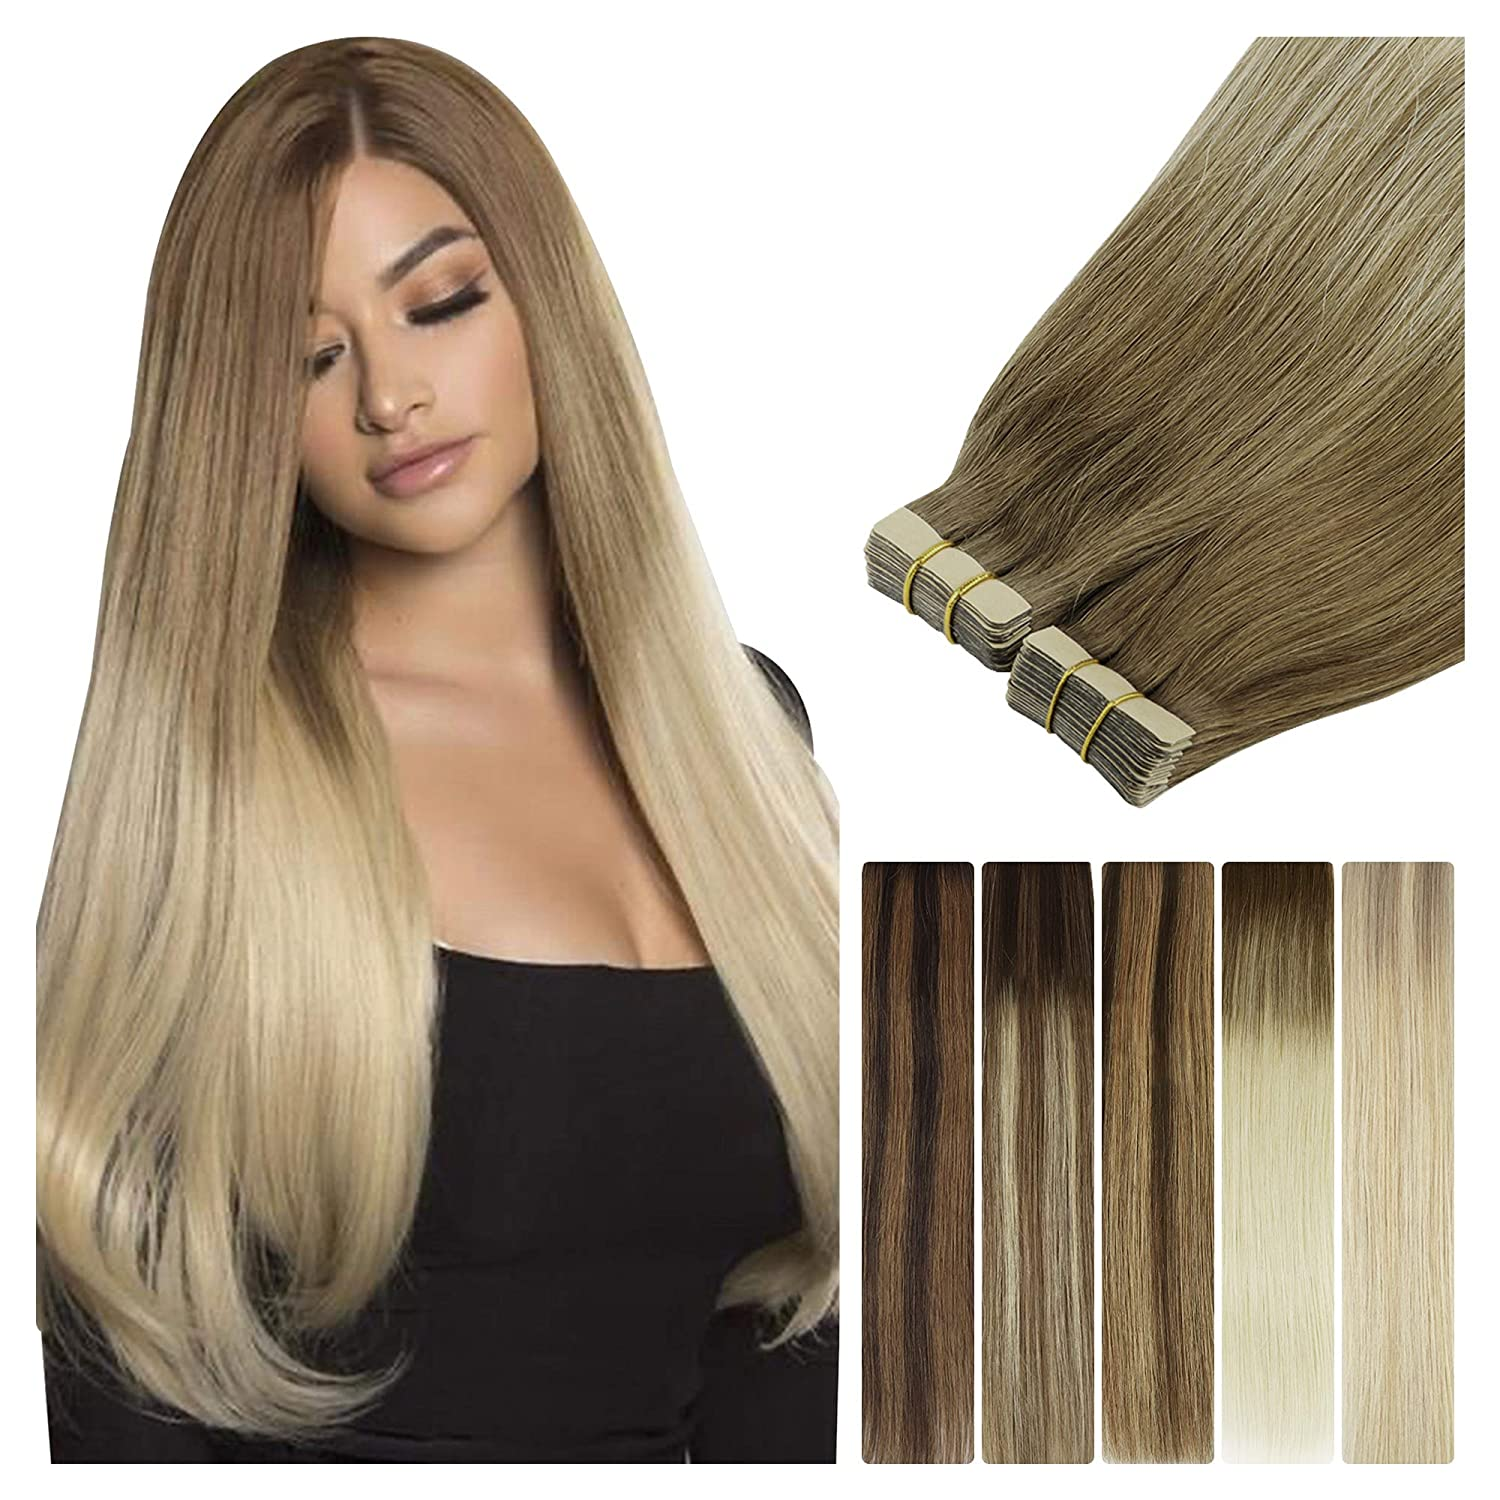 LeaLea 20pcs 50g Ranking TOP11 Human Hair Tape Extensions Brow Our shop OFFers the best service in Ash Balayage